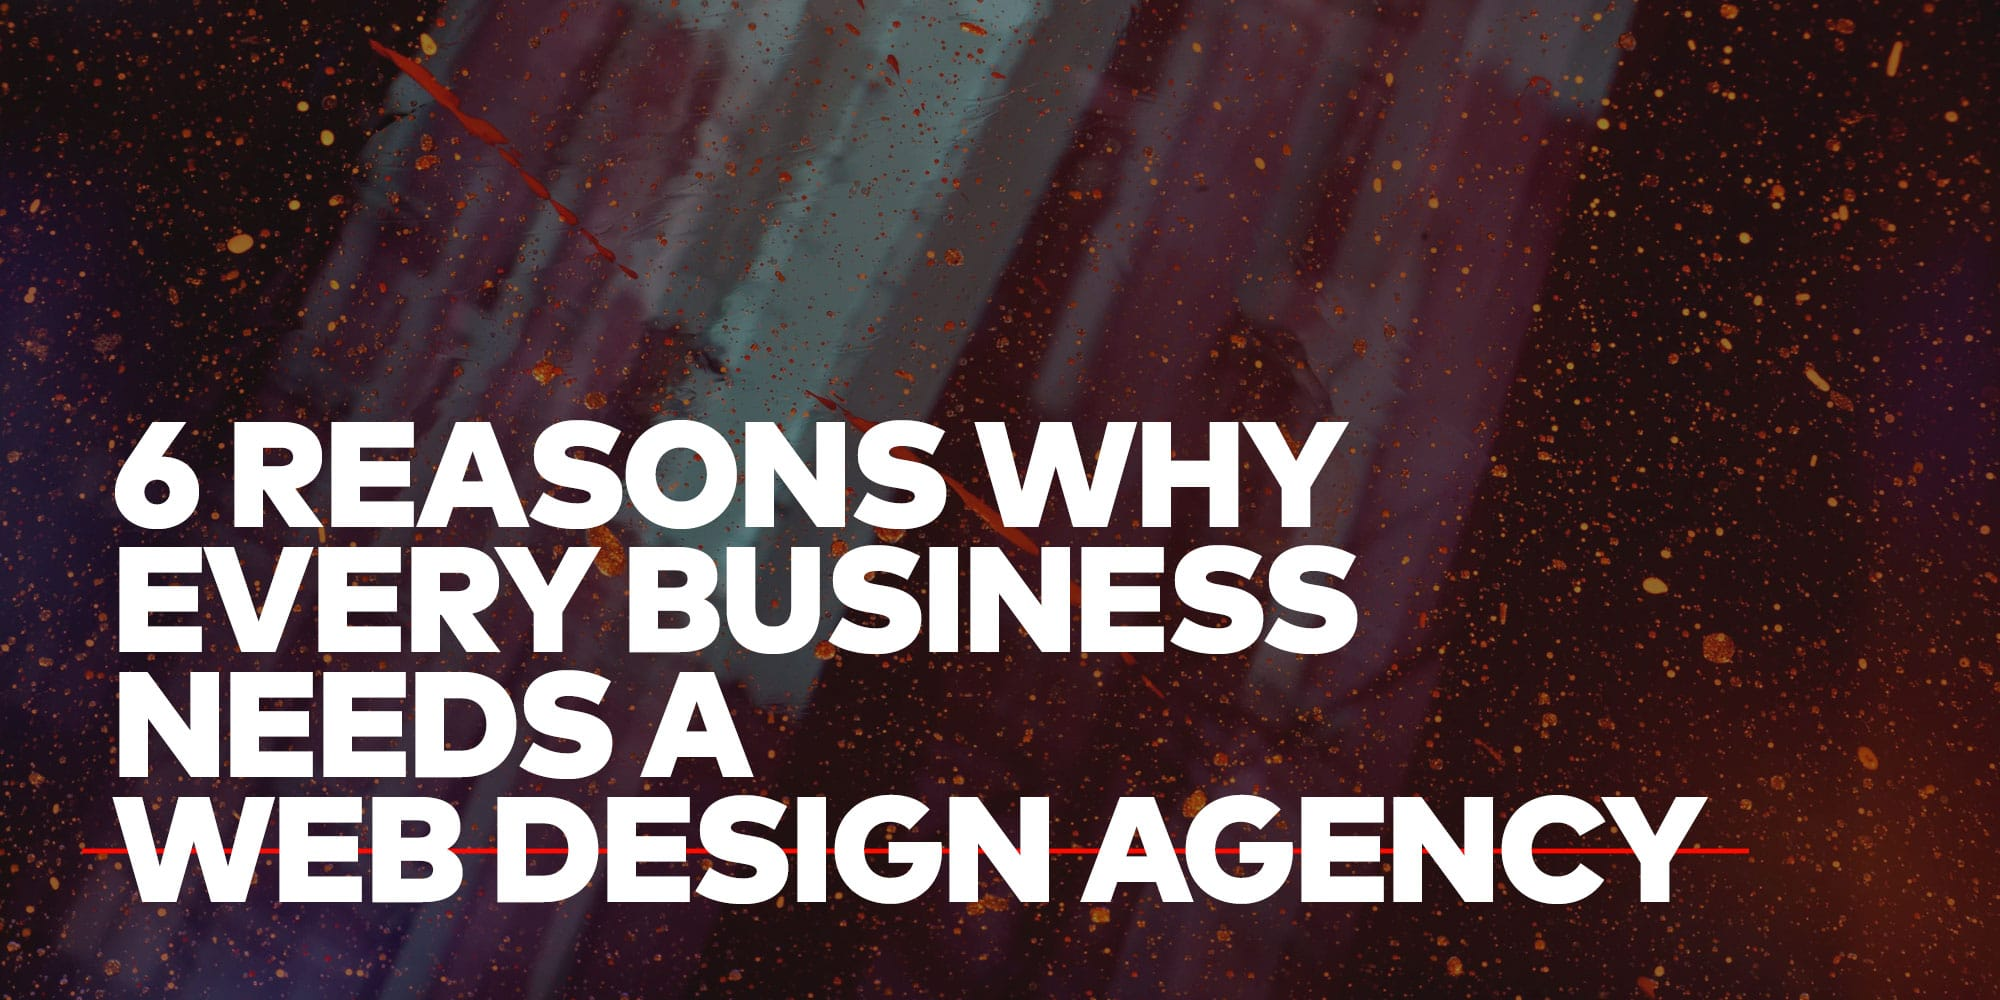 6 Reasons Why Every Business Needs a Web Design Agency